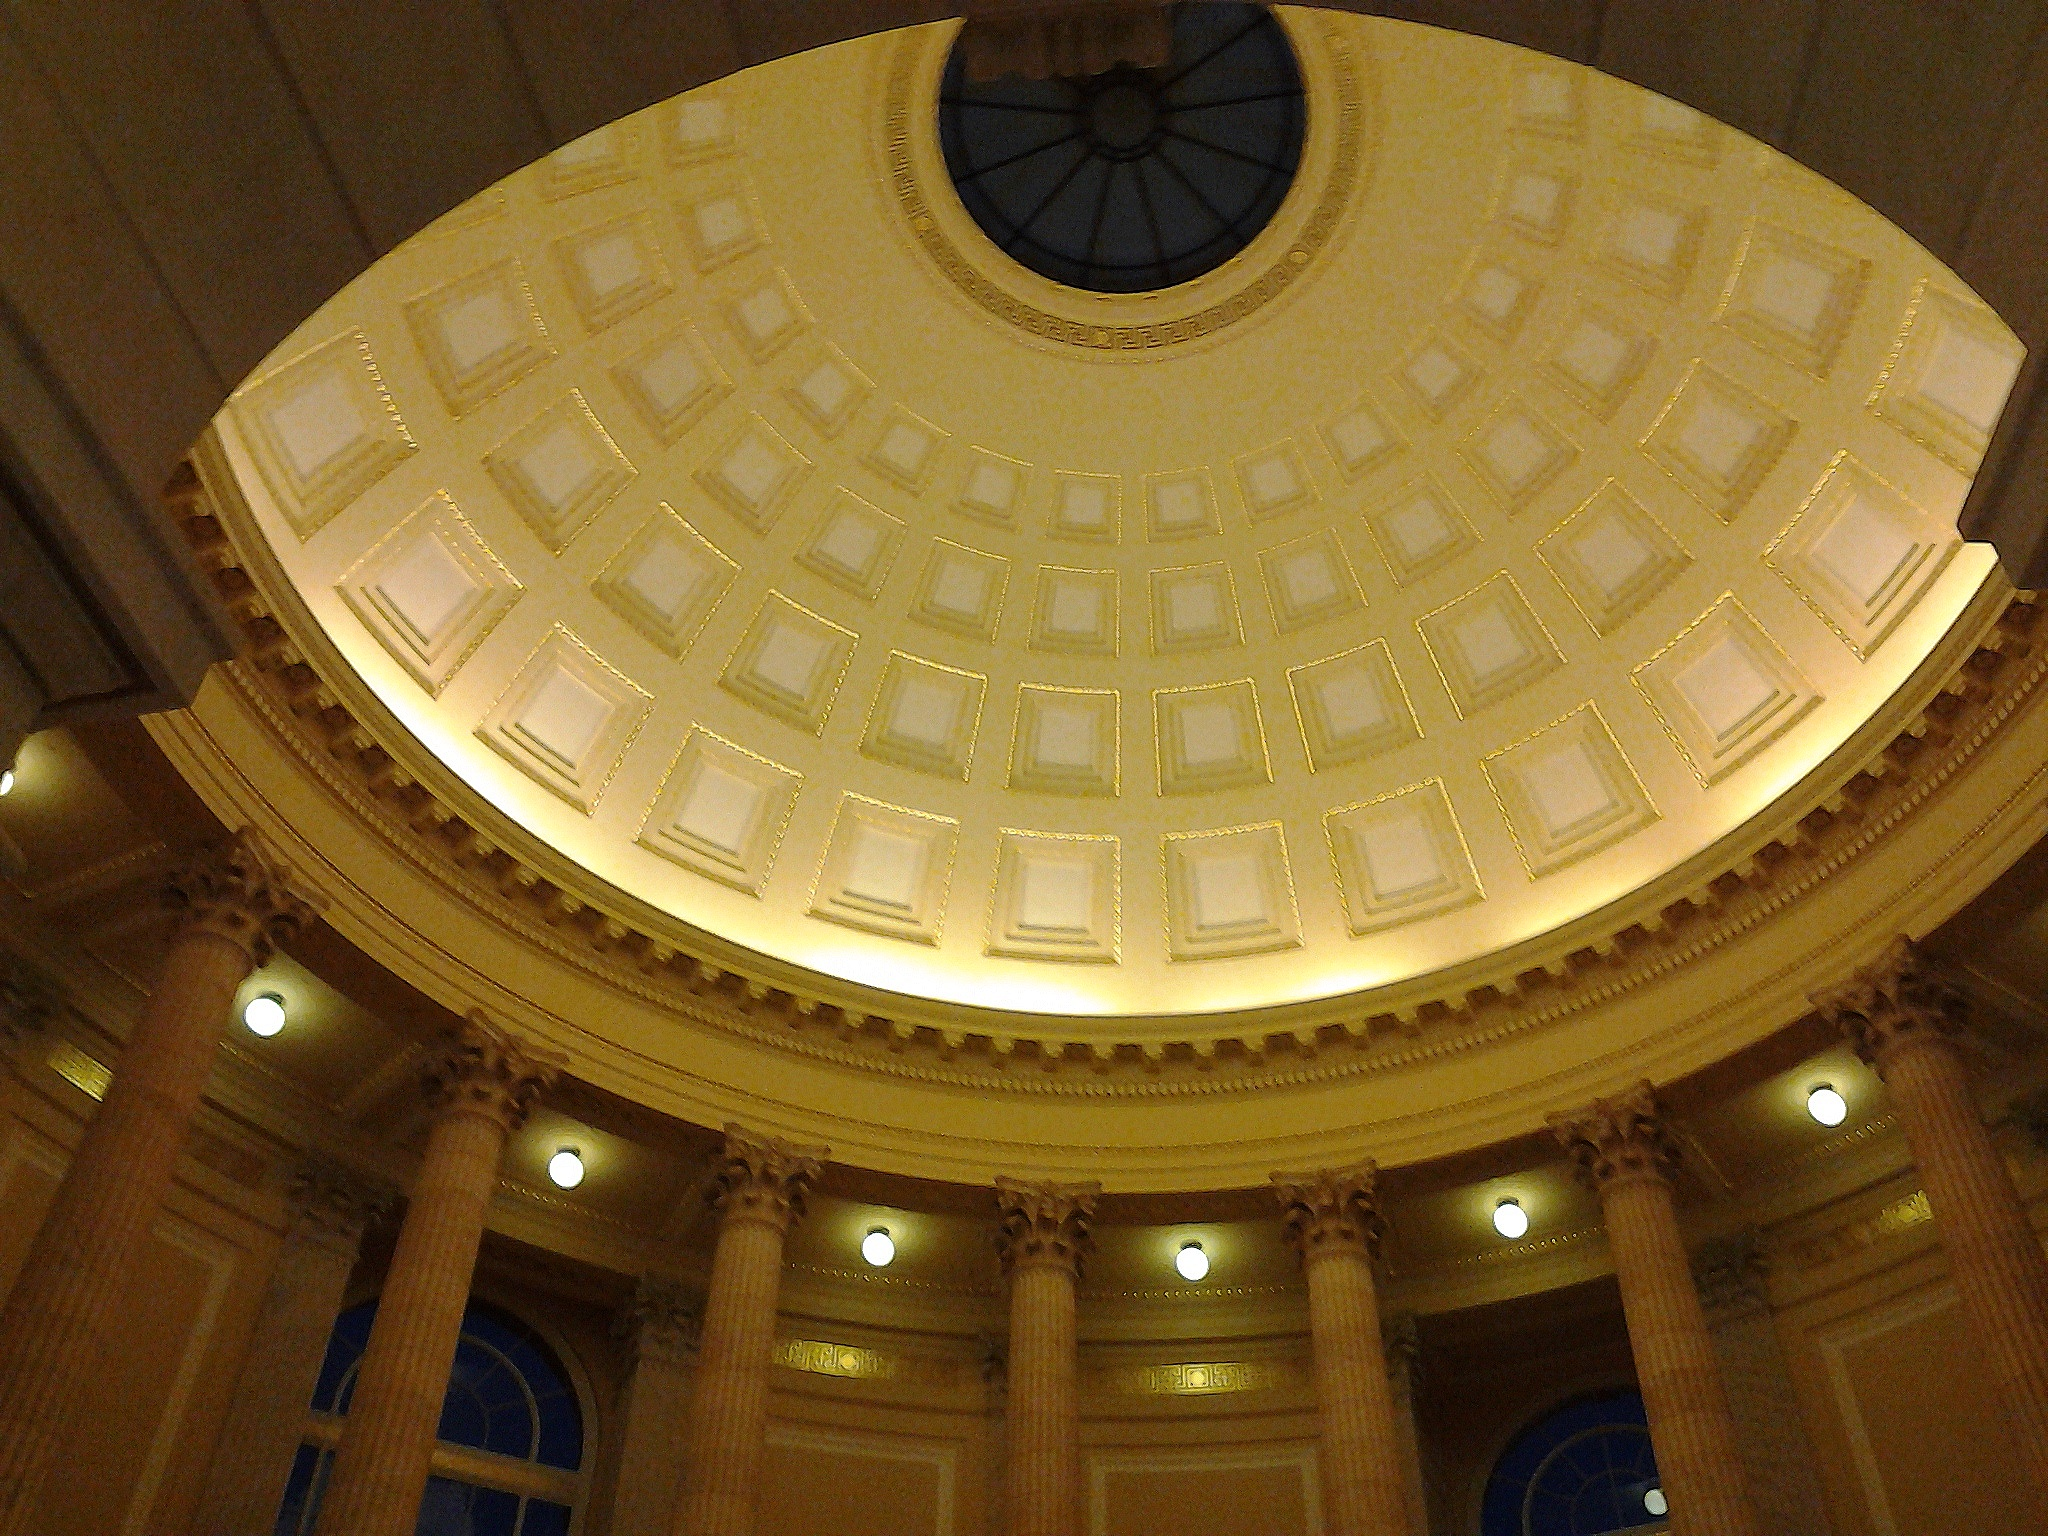 The rotunda at Cannon is beautifully detailed and not over-scaled.